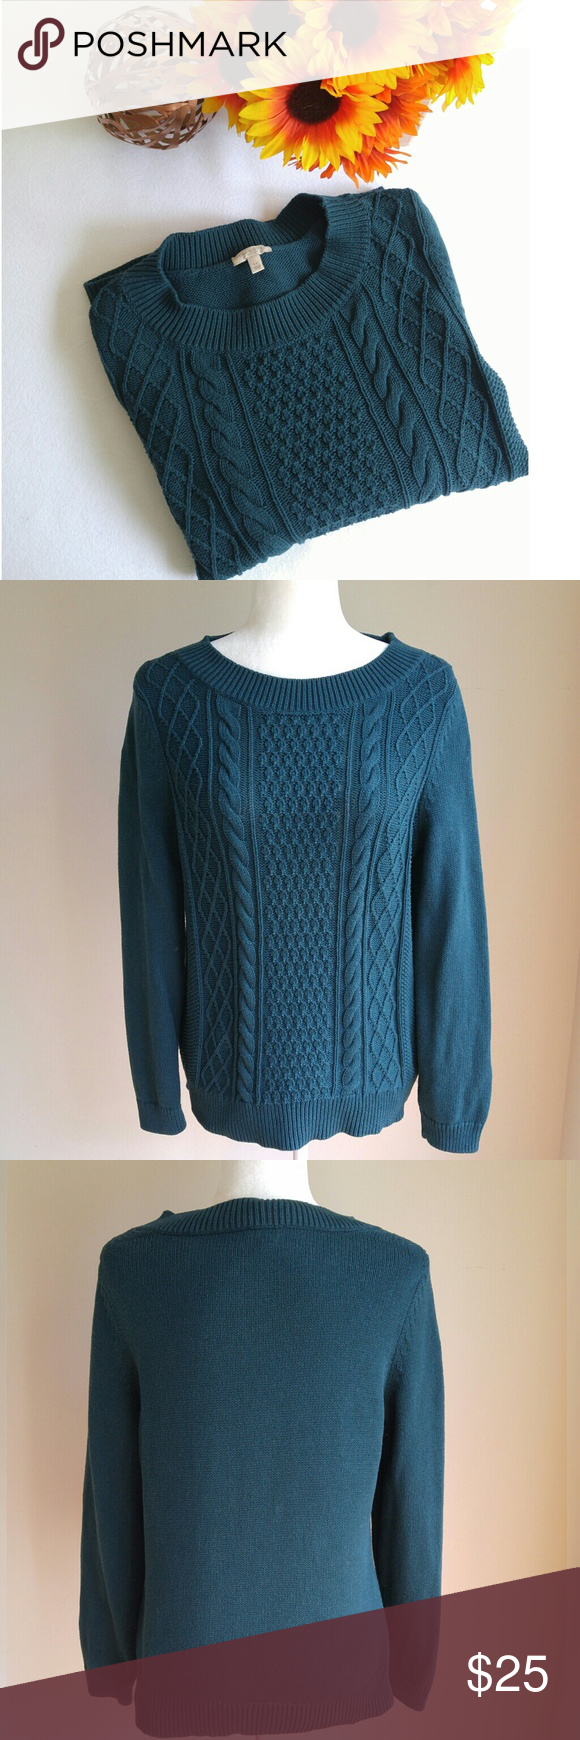 ✨ Talbots Teal Cable Knit Sweater | Cable knit sweaters, Talbots ...